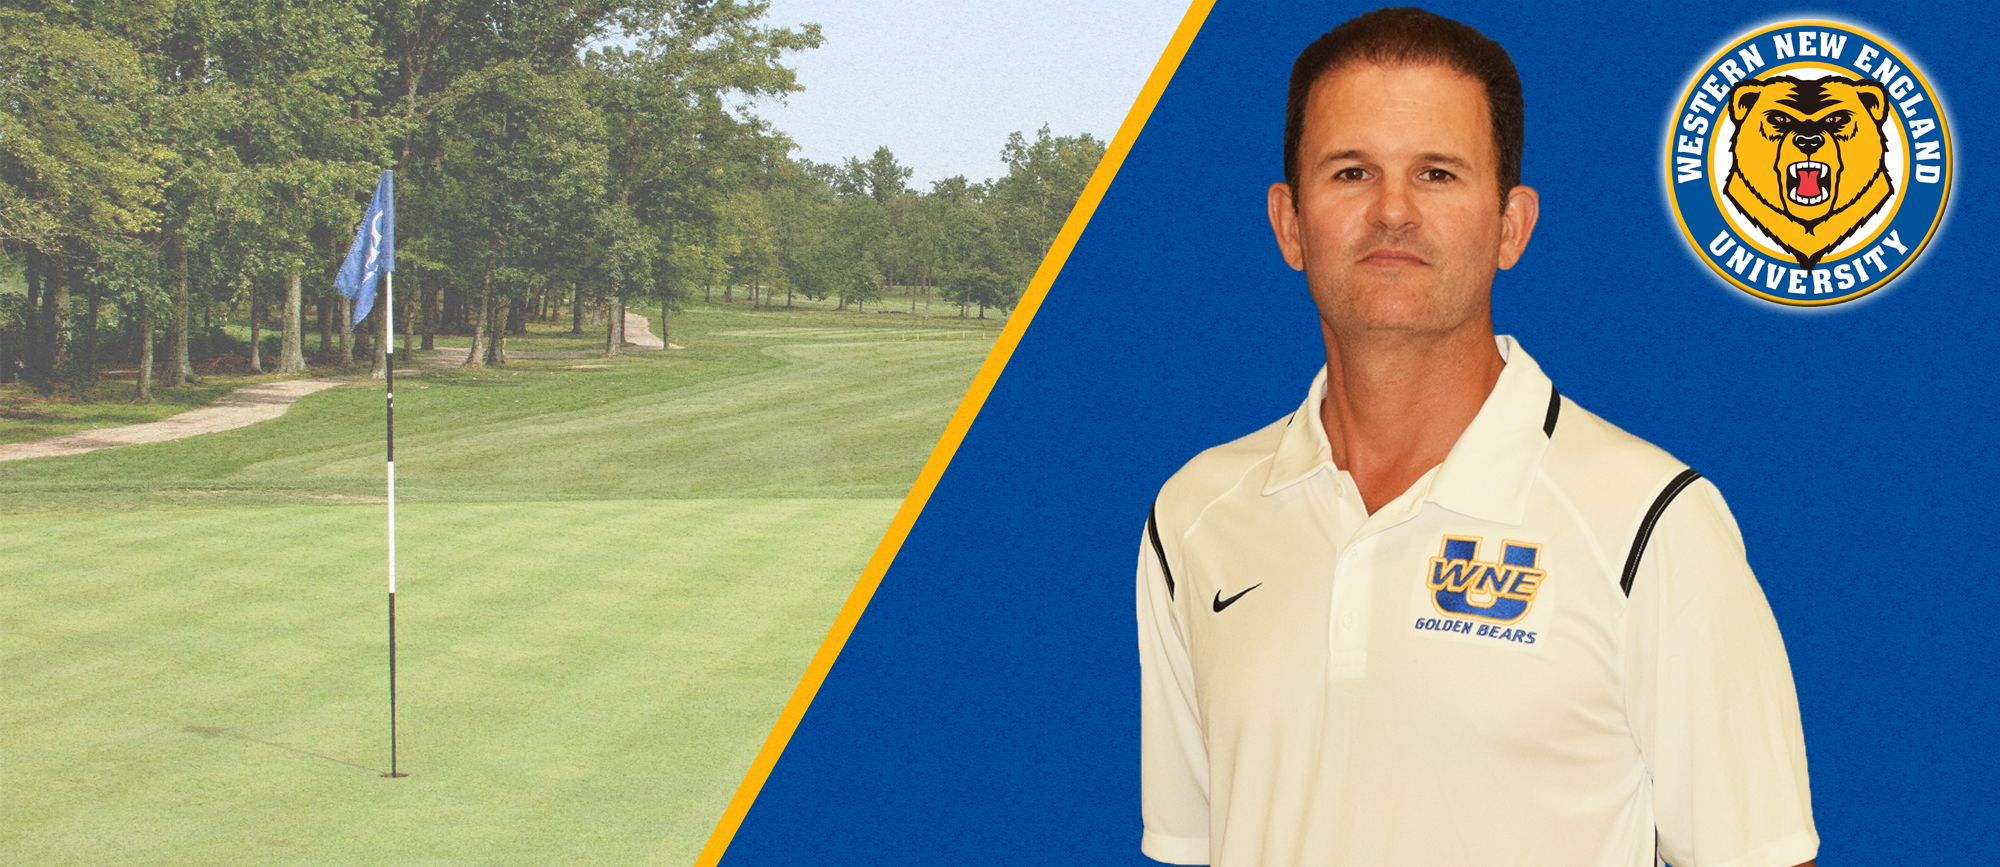 Kyle Gallo Named Head Men's Golf Coach at Western New England